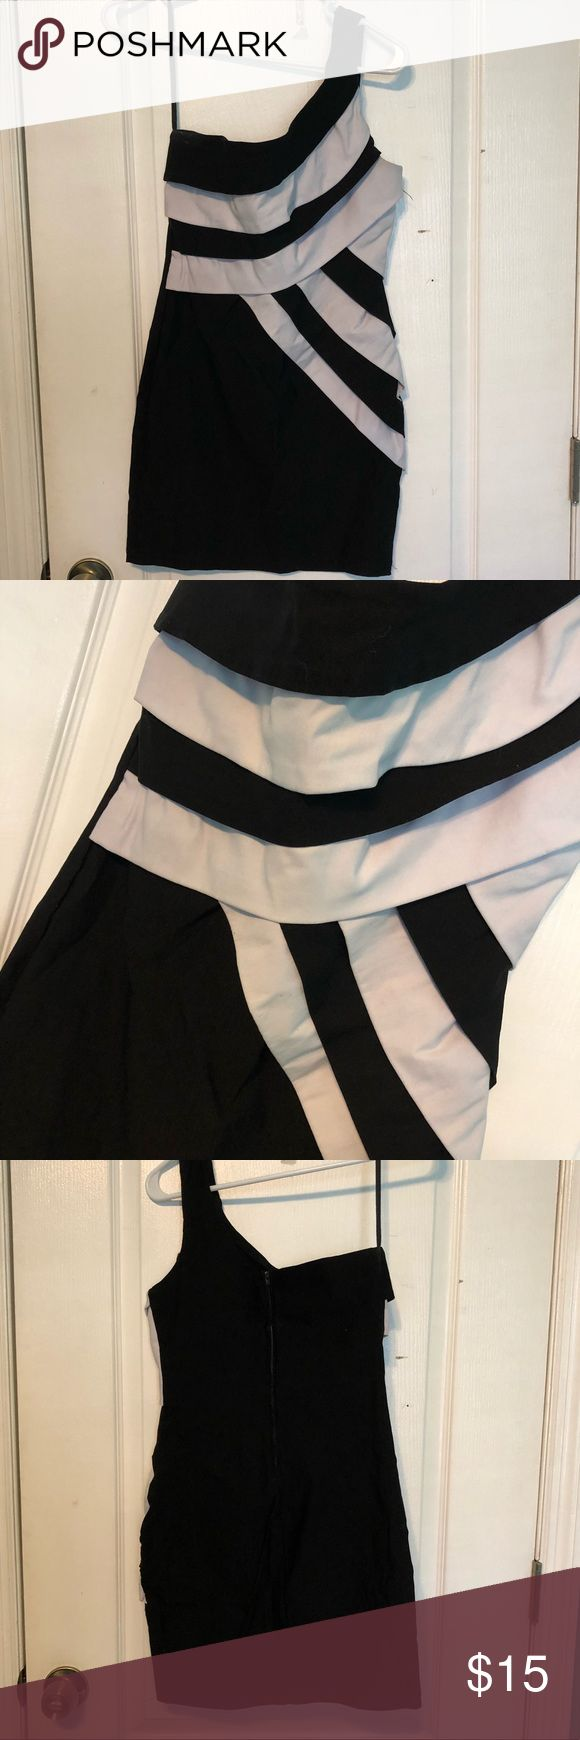 Black&White cocktail dress Can be used for Christmas parties, homecoming, junior prom or a fun night out! Black and white striped size 3 dress Ruby Rox Dresses Mini